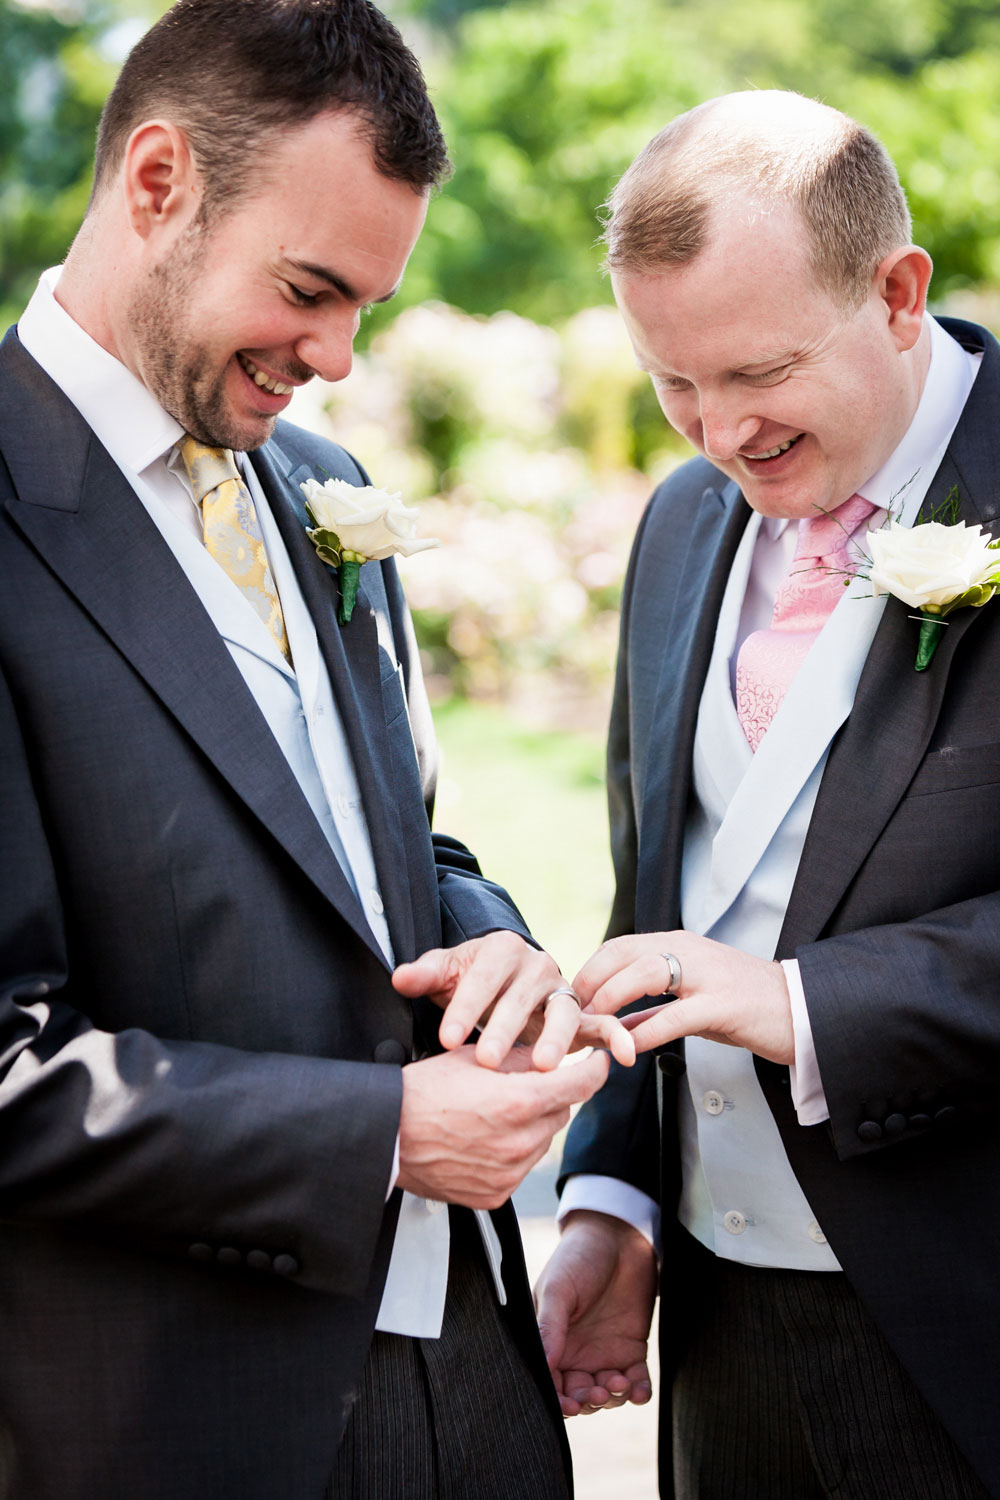 Two grooms comparing wedding rings